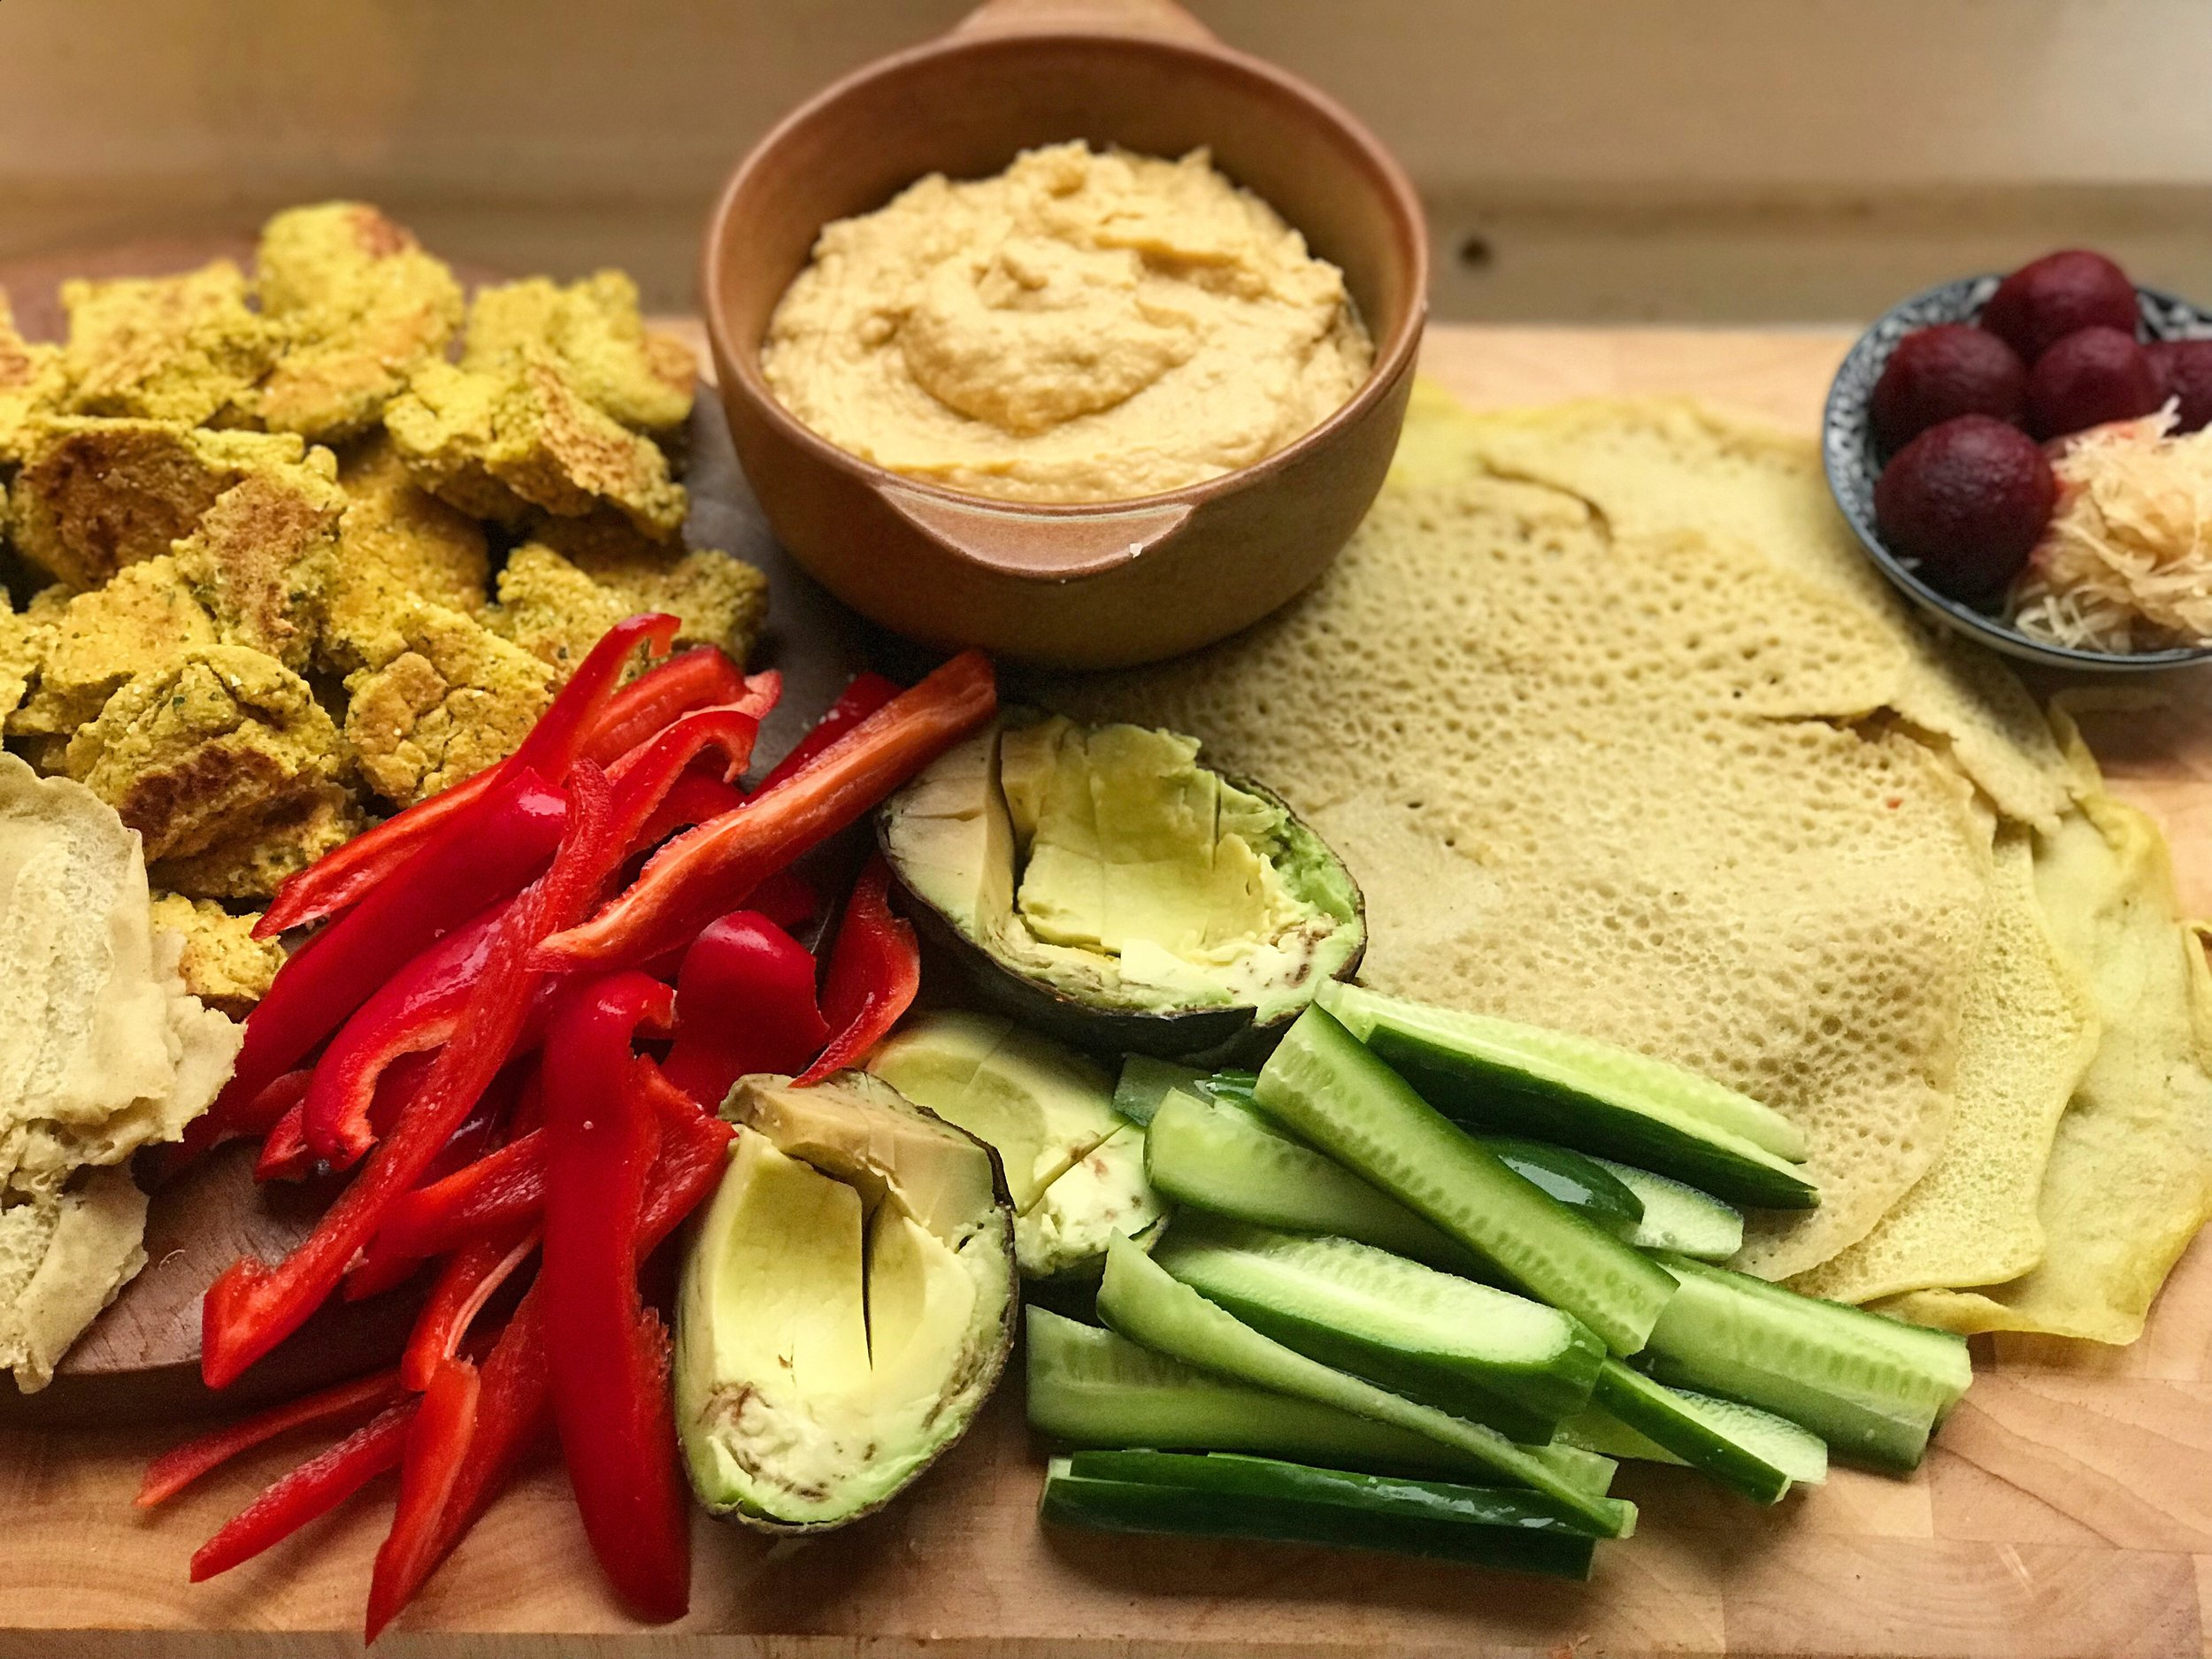 Homemade falafels & gluten free wraps (recipe in my upcoming ebook 'Gluten Free Vegan Recipes for Vitality'.